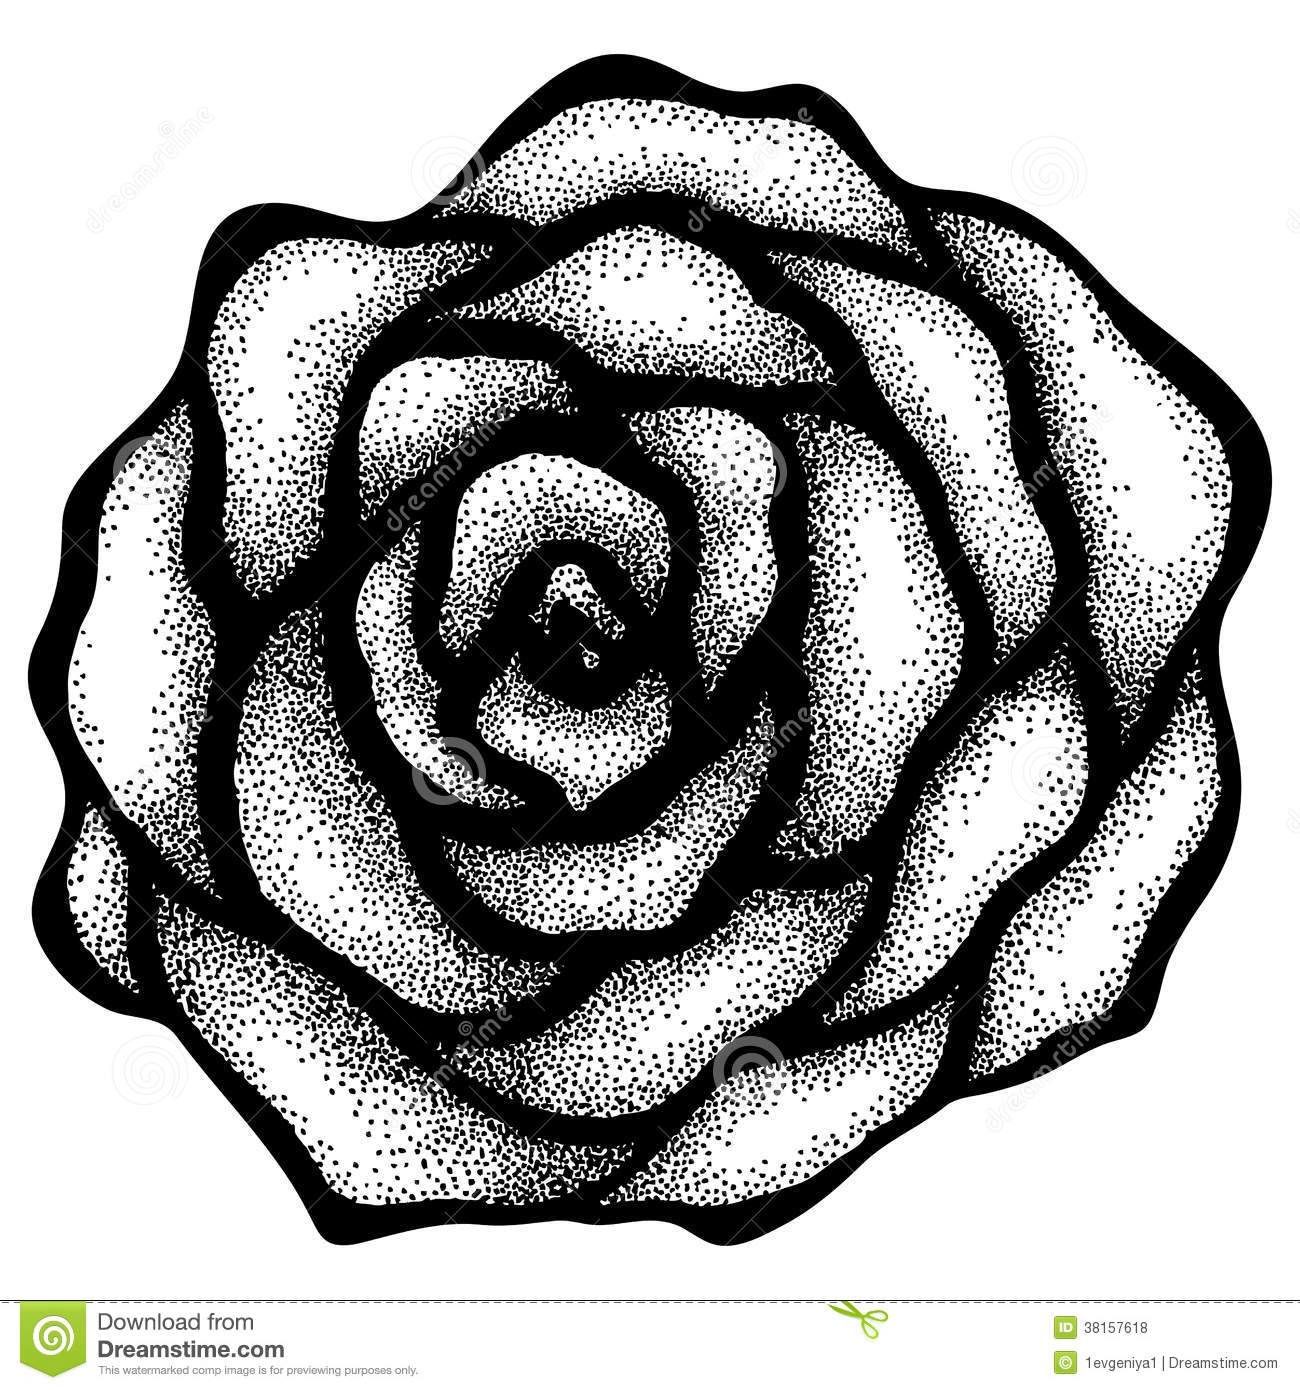 Drawing Lines With Core Graphics : Abstract rose free hand drawing in a graphic style points